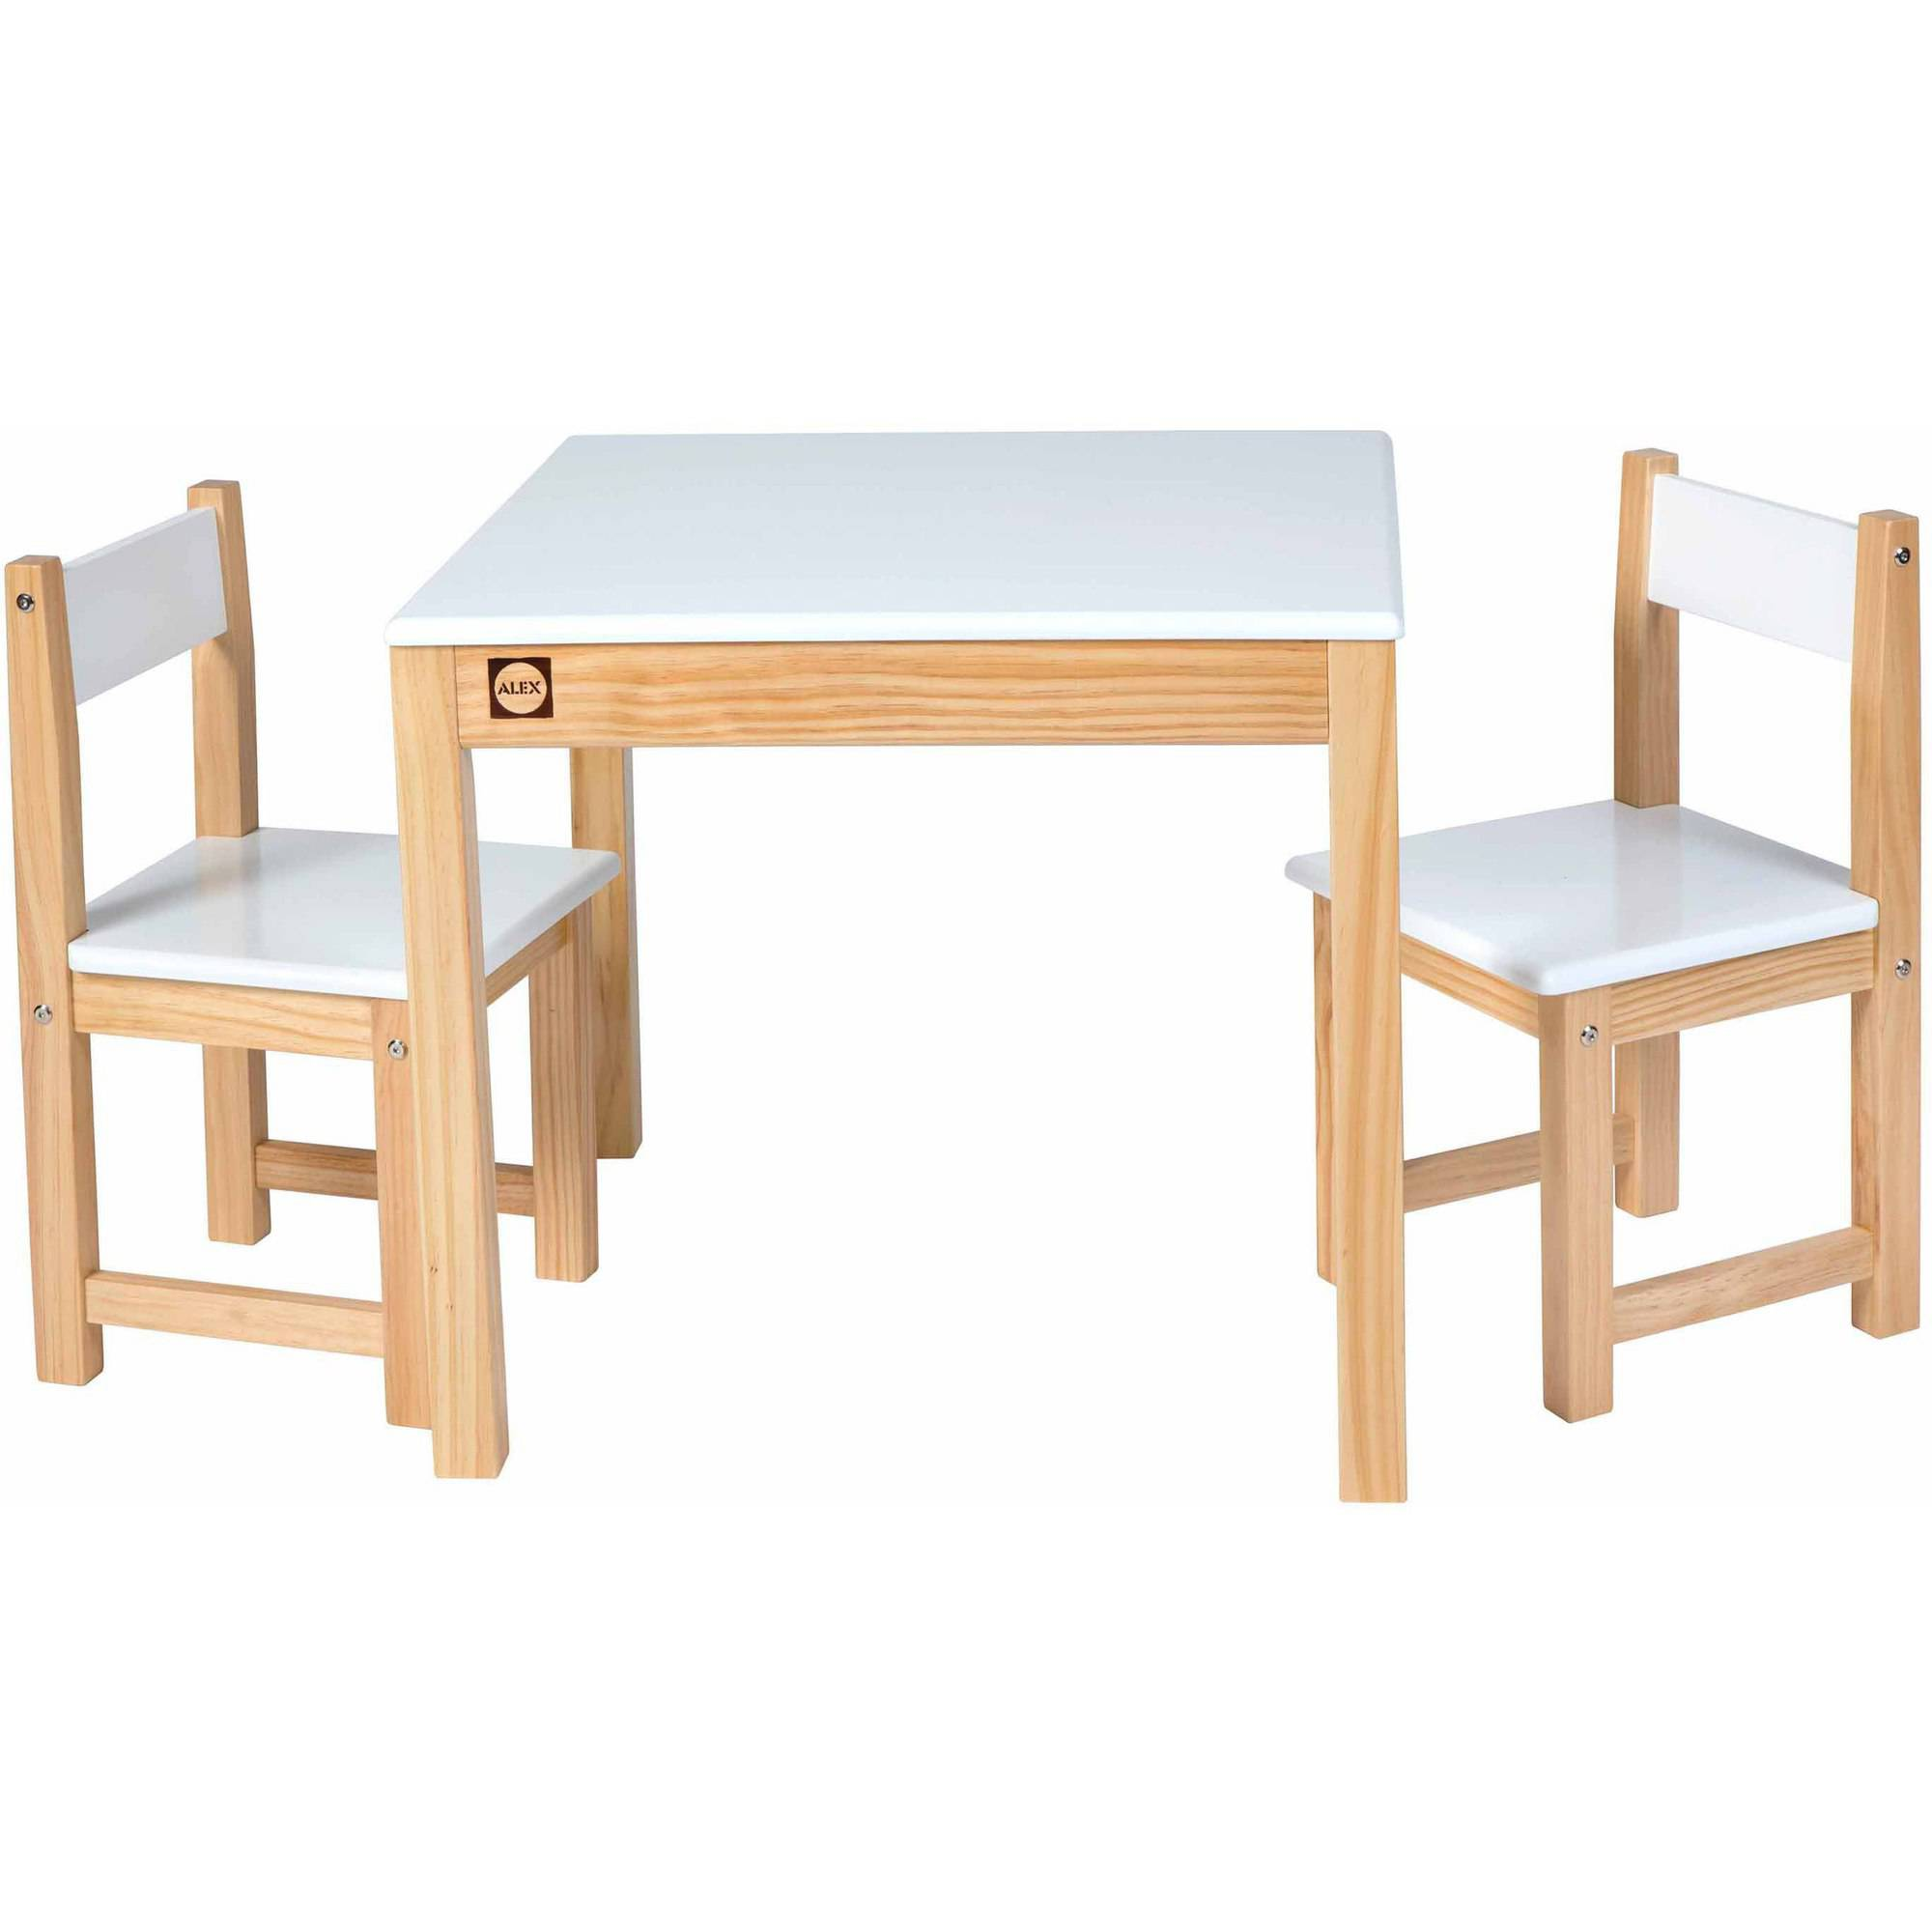 walmart table and chair set childrens chairs alex toys artist studio wooden